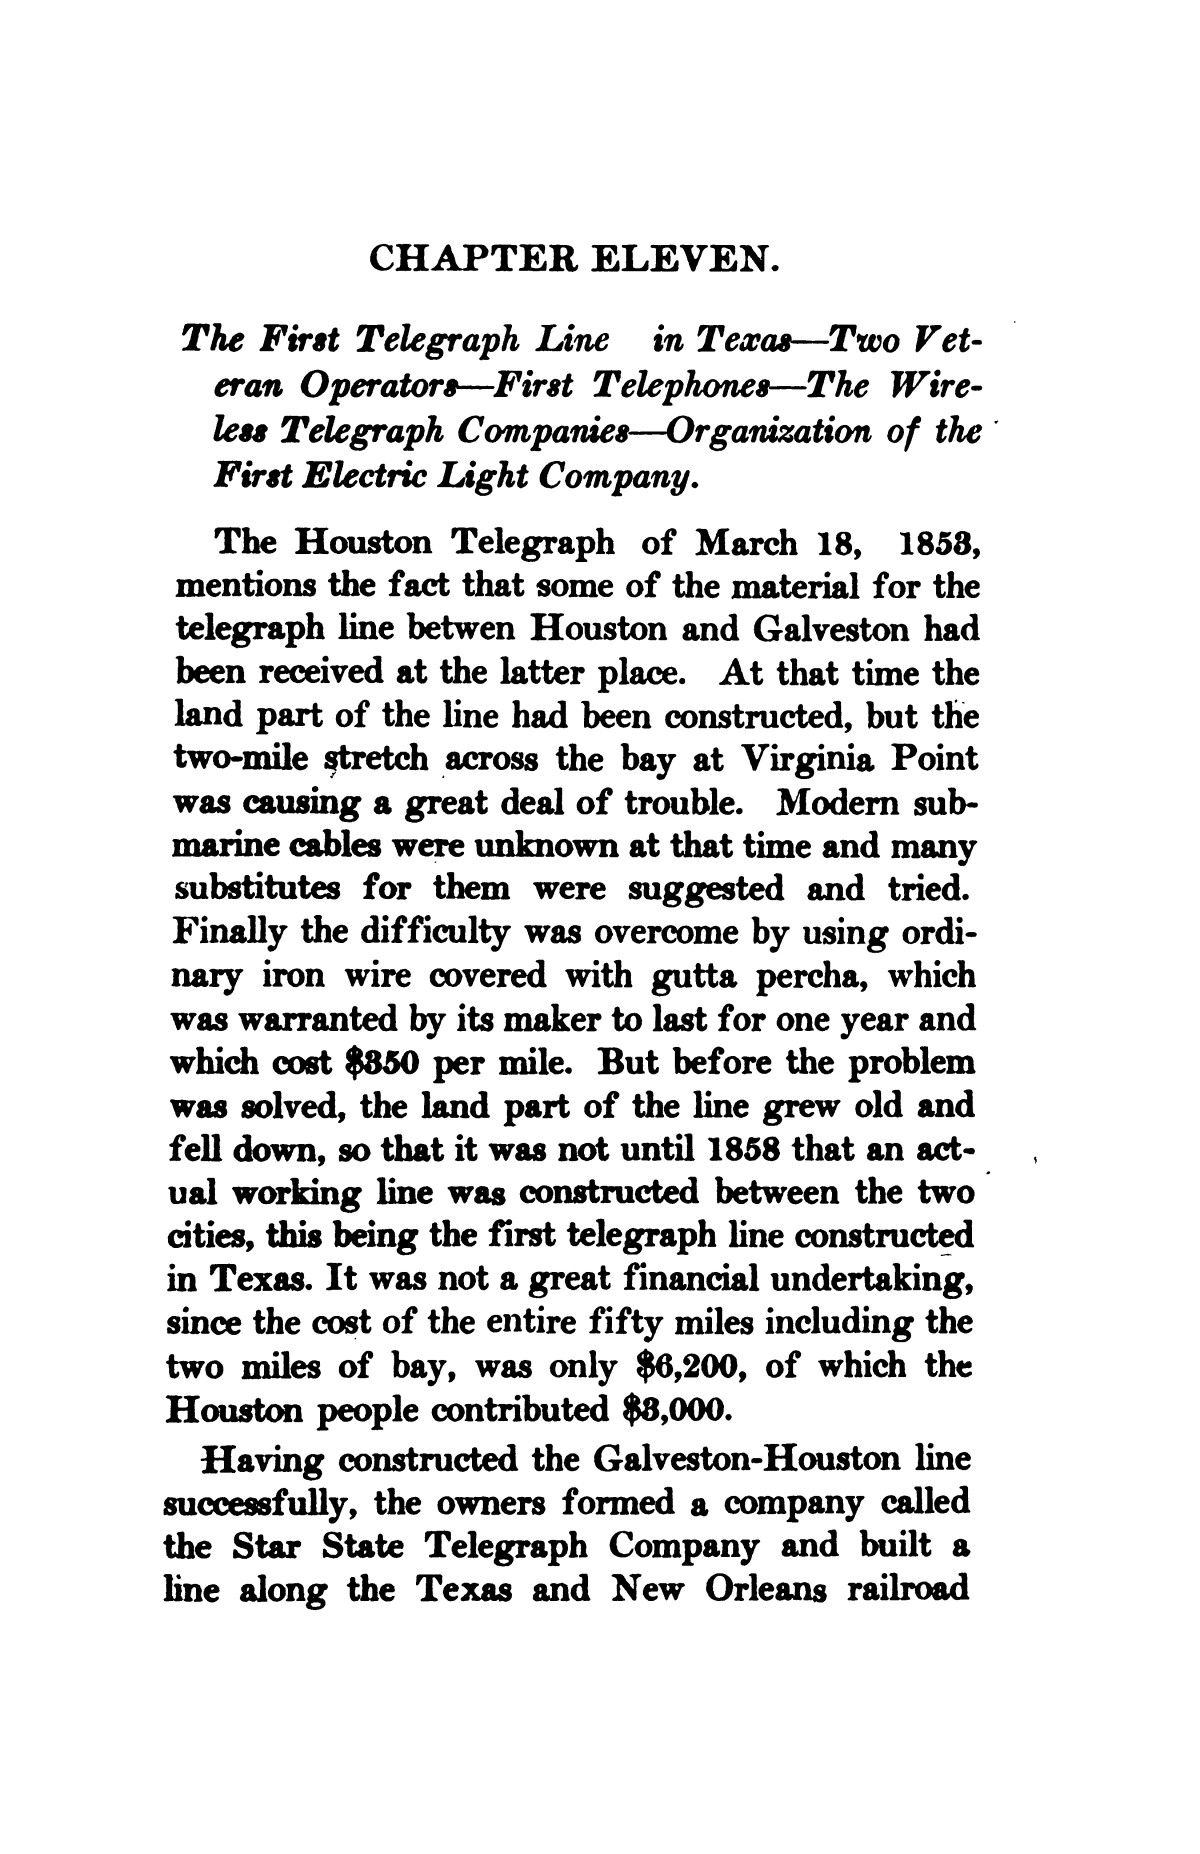 A thumb-nail history of the city of Houston, Texas, from its founding in 1836 to the year 1912                                                                                                      170